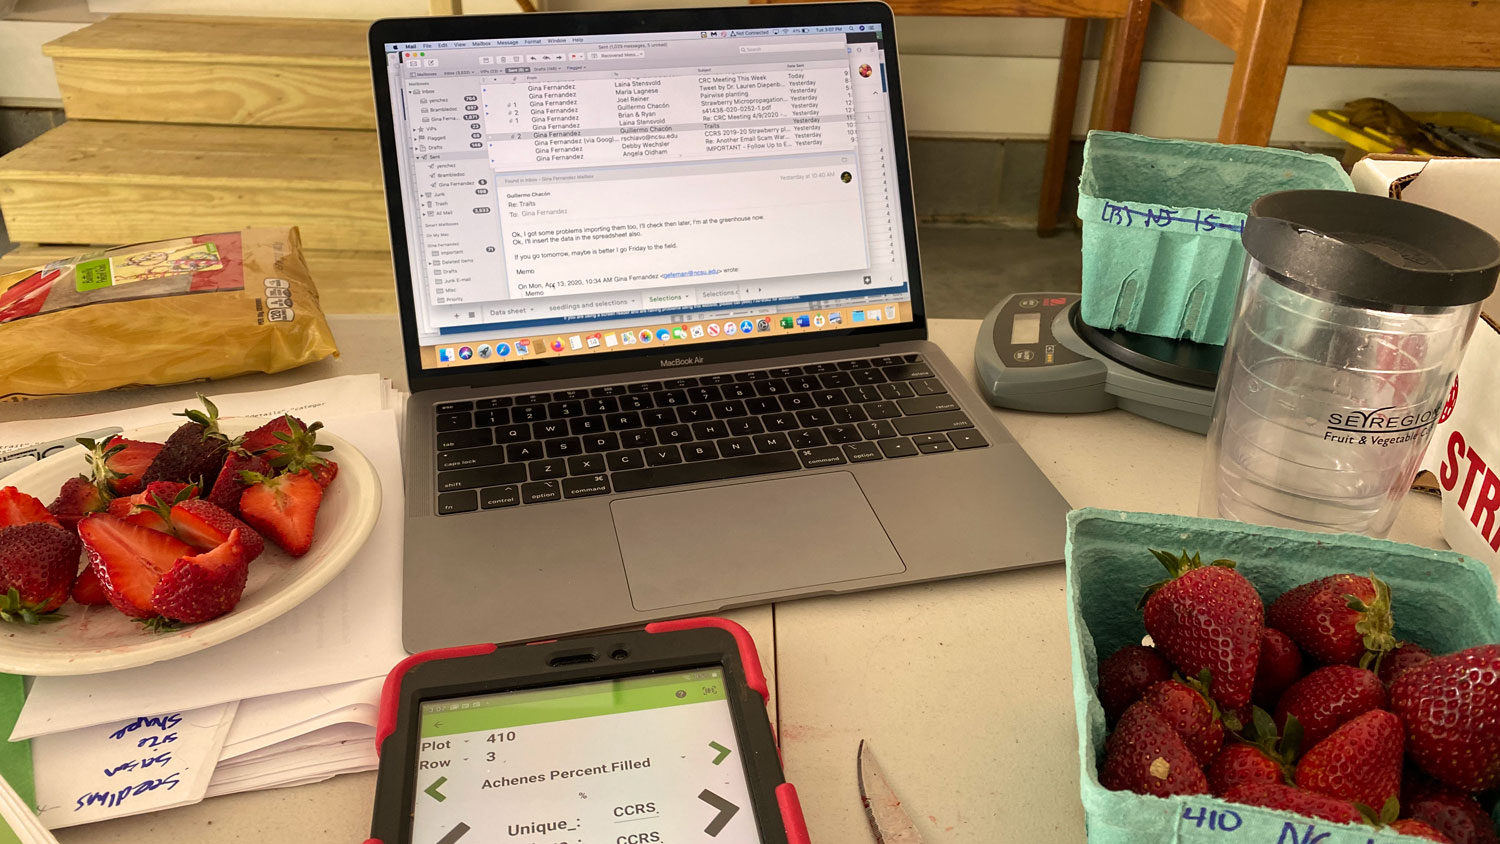 Desk with laptop and strawberry measuring equipment